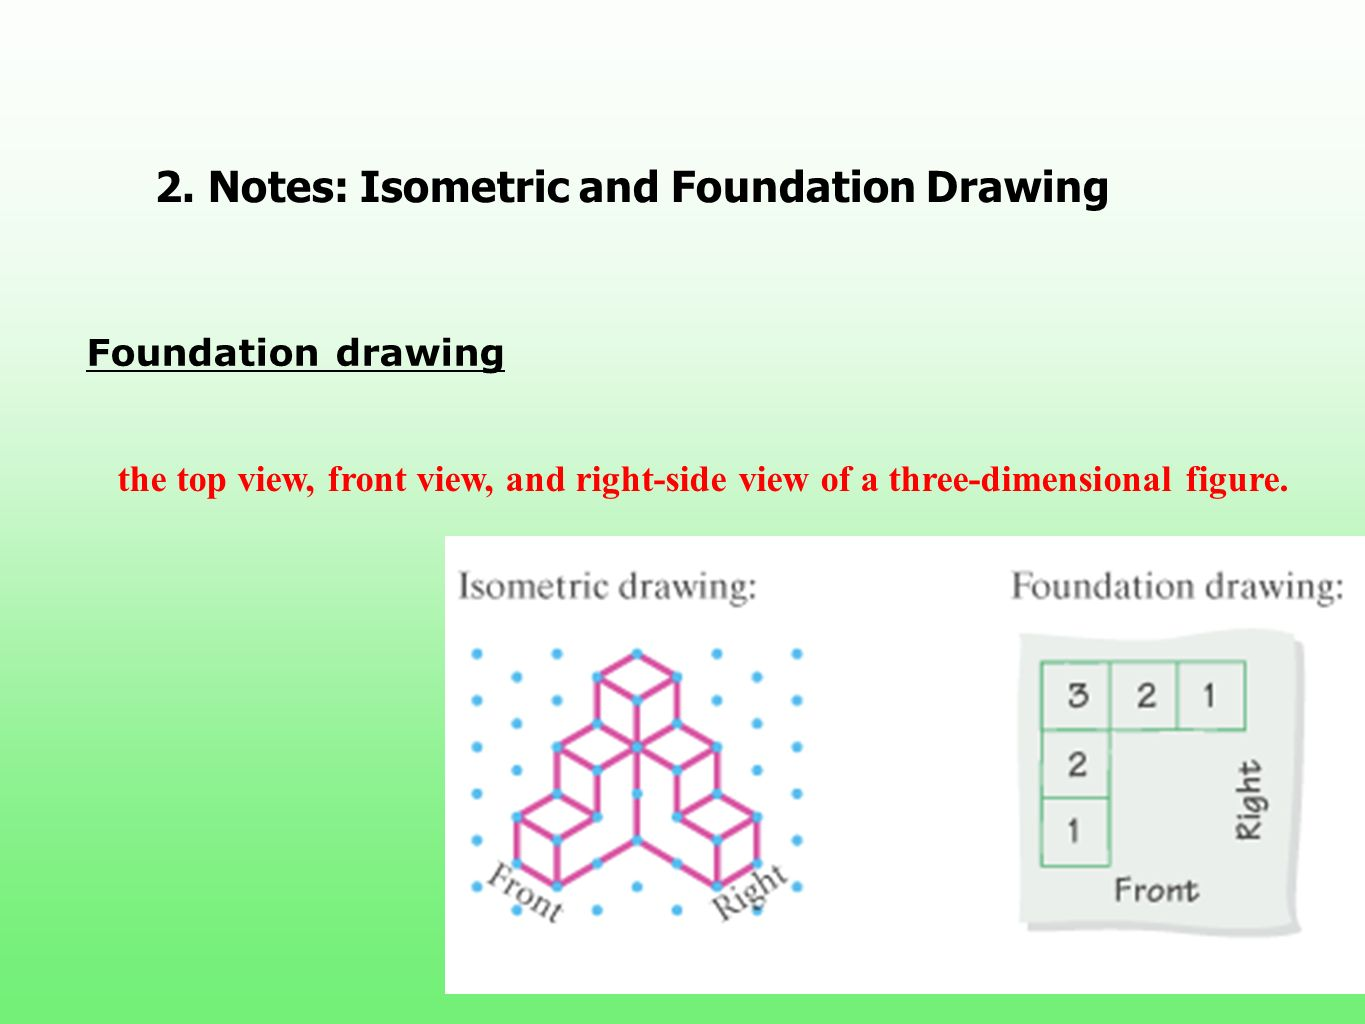 2. Notes: Isometric and Foundation Drawing